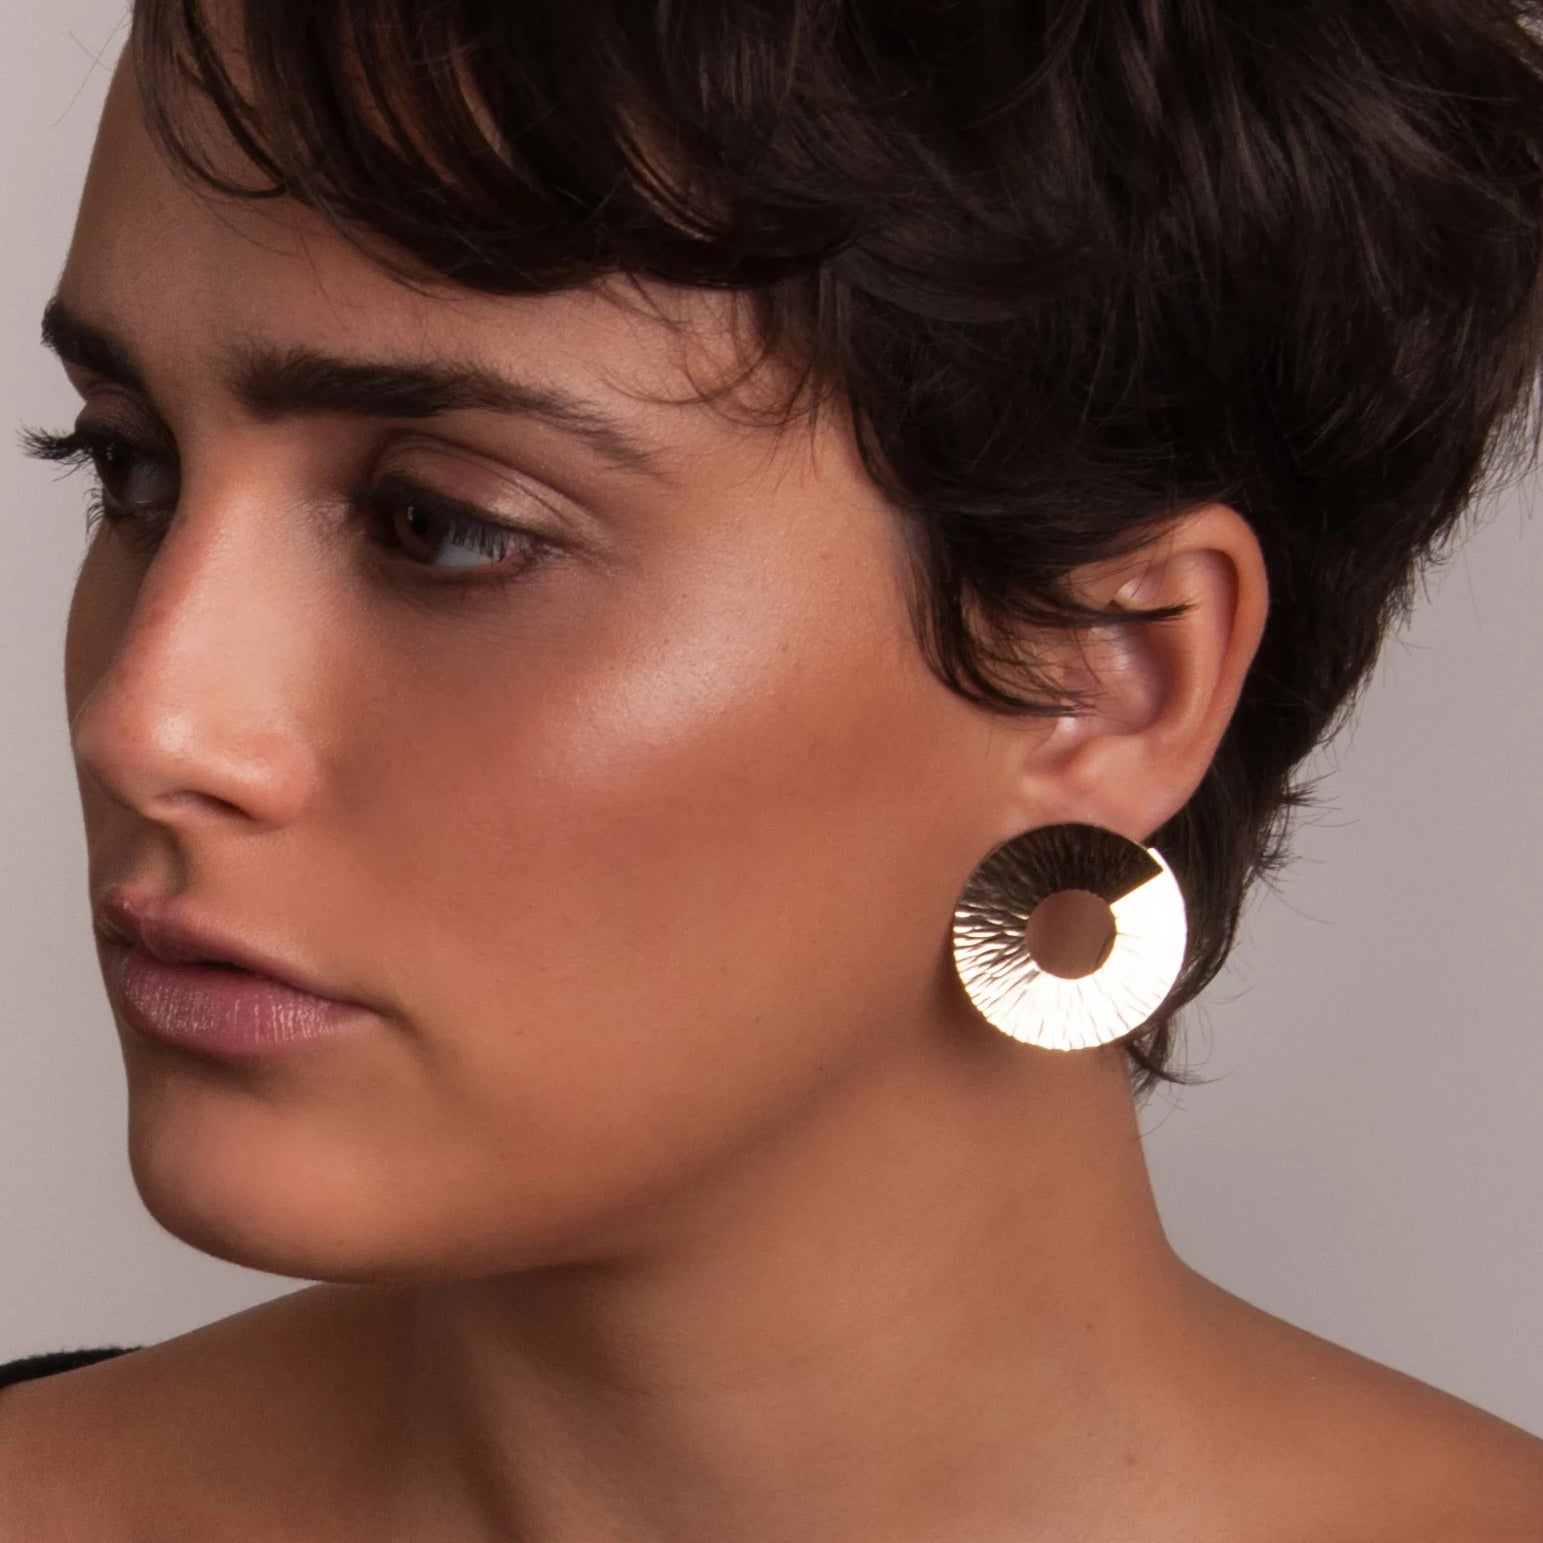 LARGE SPAN EARRINGS